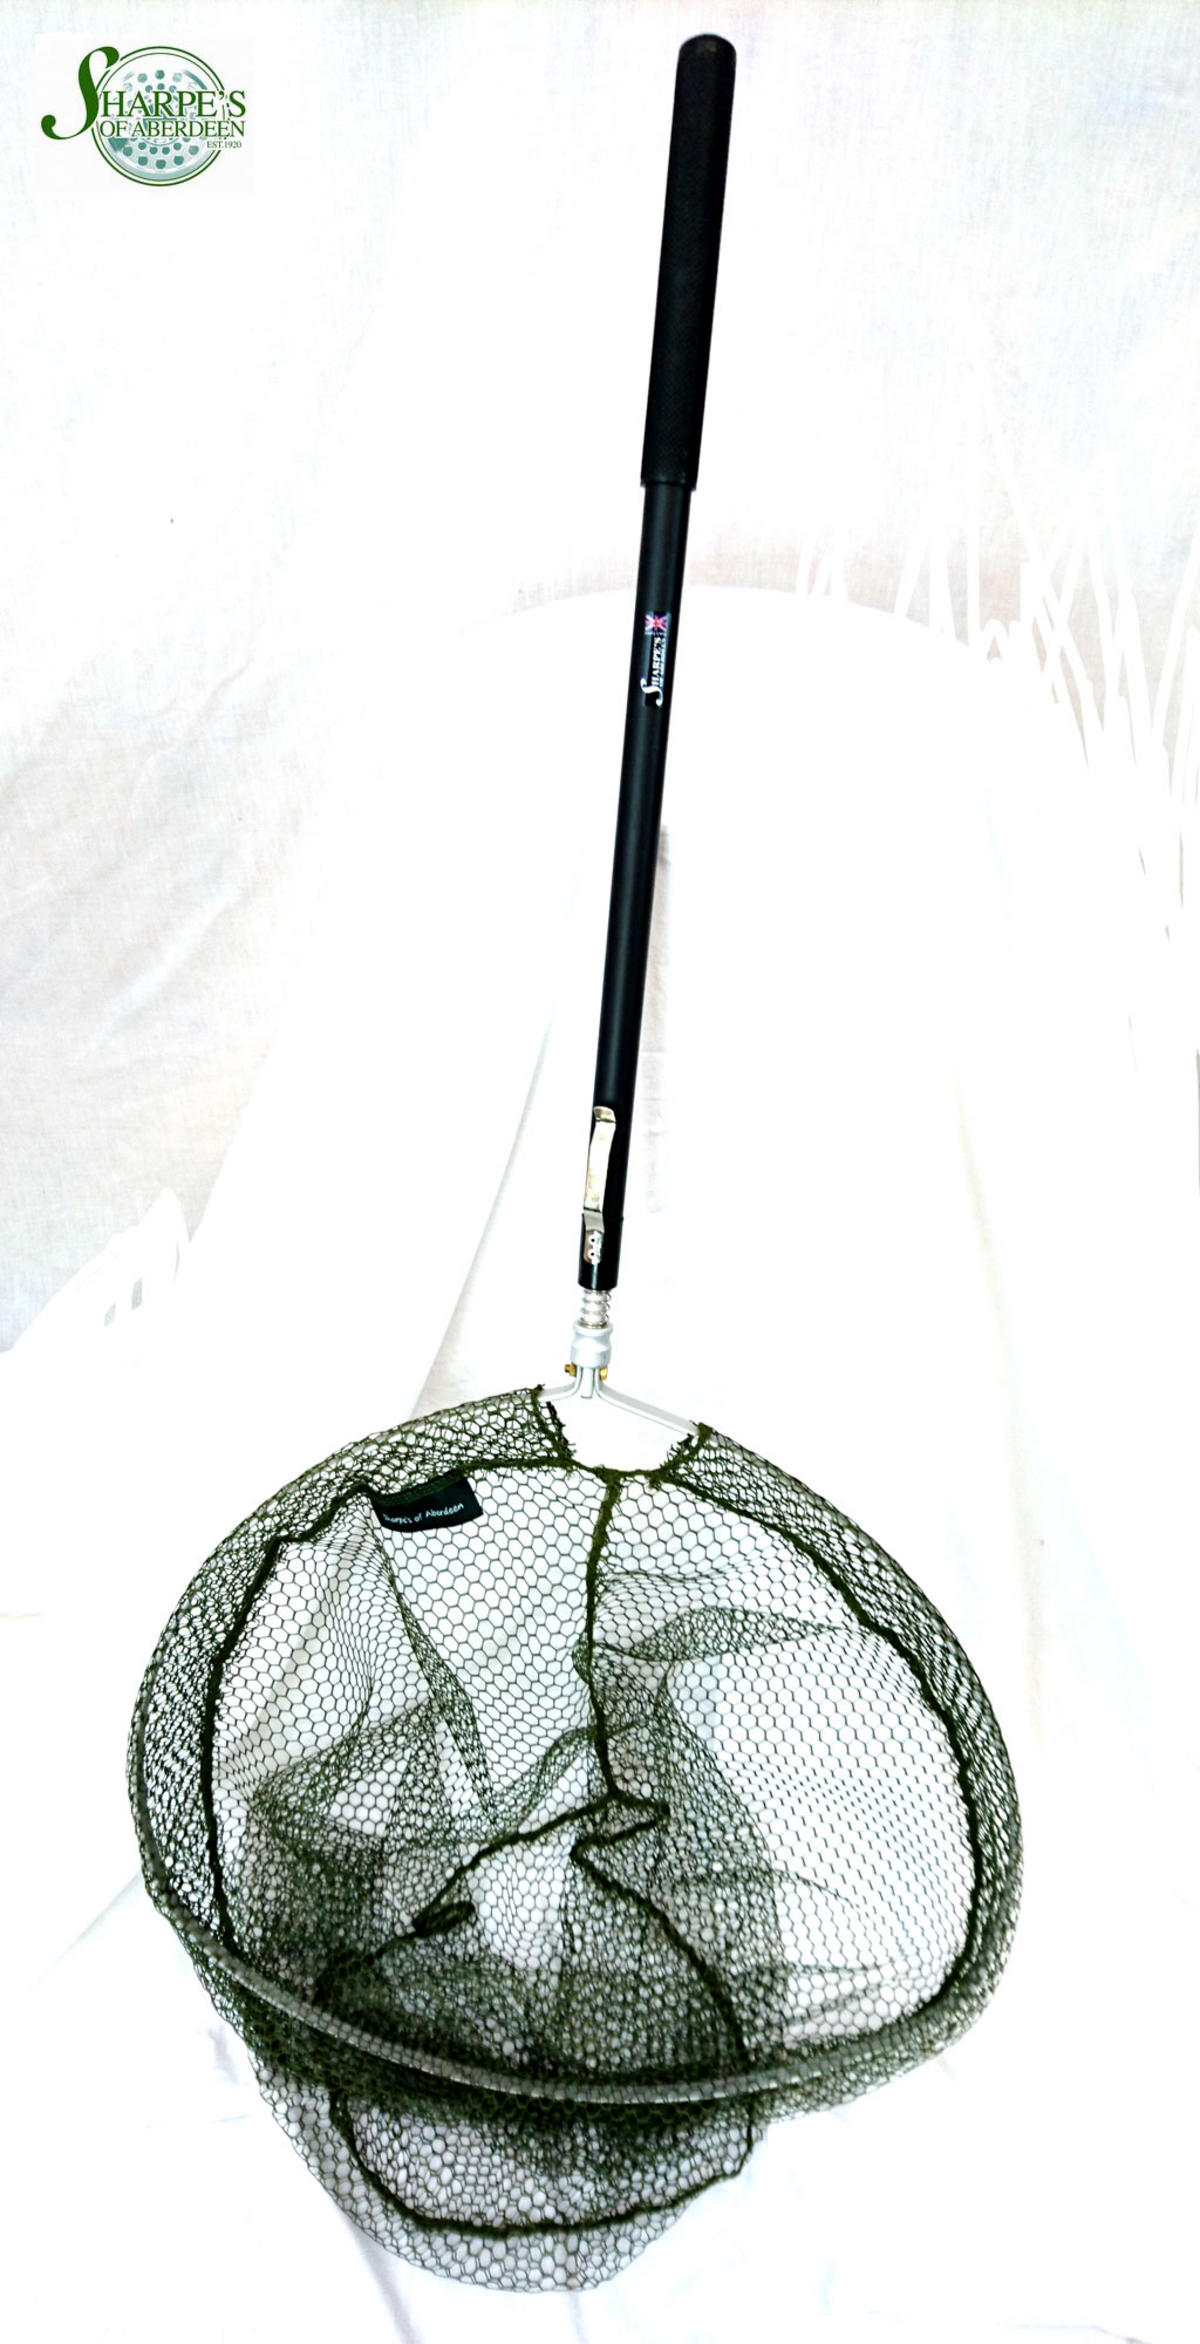 Sharpe's of Aberdeen Errol Sea Trout Telescopic Landing Net Lakeside Soft Mesh